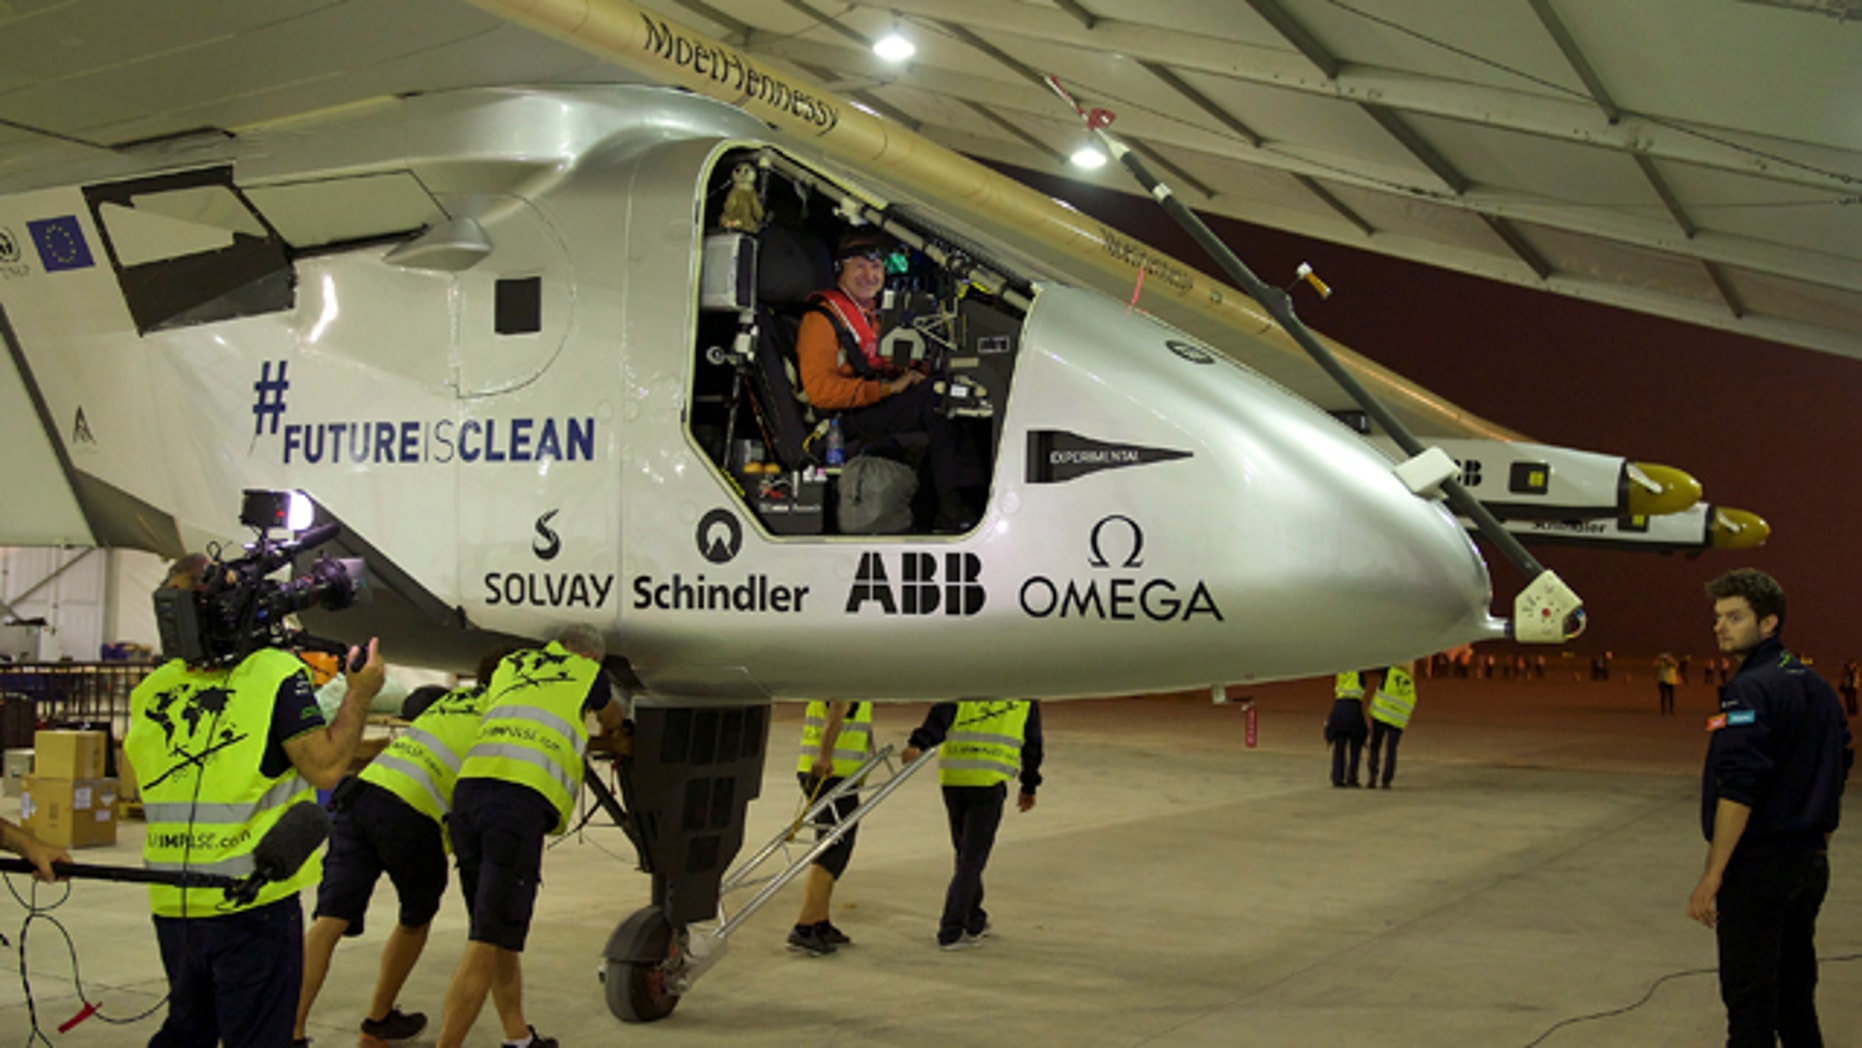 May 31, 2015: Crew members push the aircraft Solar Impulse 2 piloted by Swiss Andre Borschberg out of a hangar before taking off at Nanjing Lukou International Airport in Nanjing in eastern China's Jiangsu province. (Chinatopix via AP)